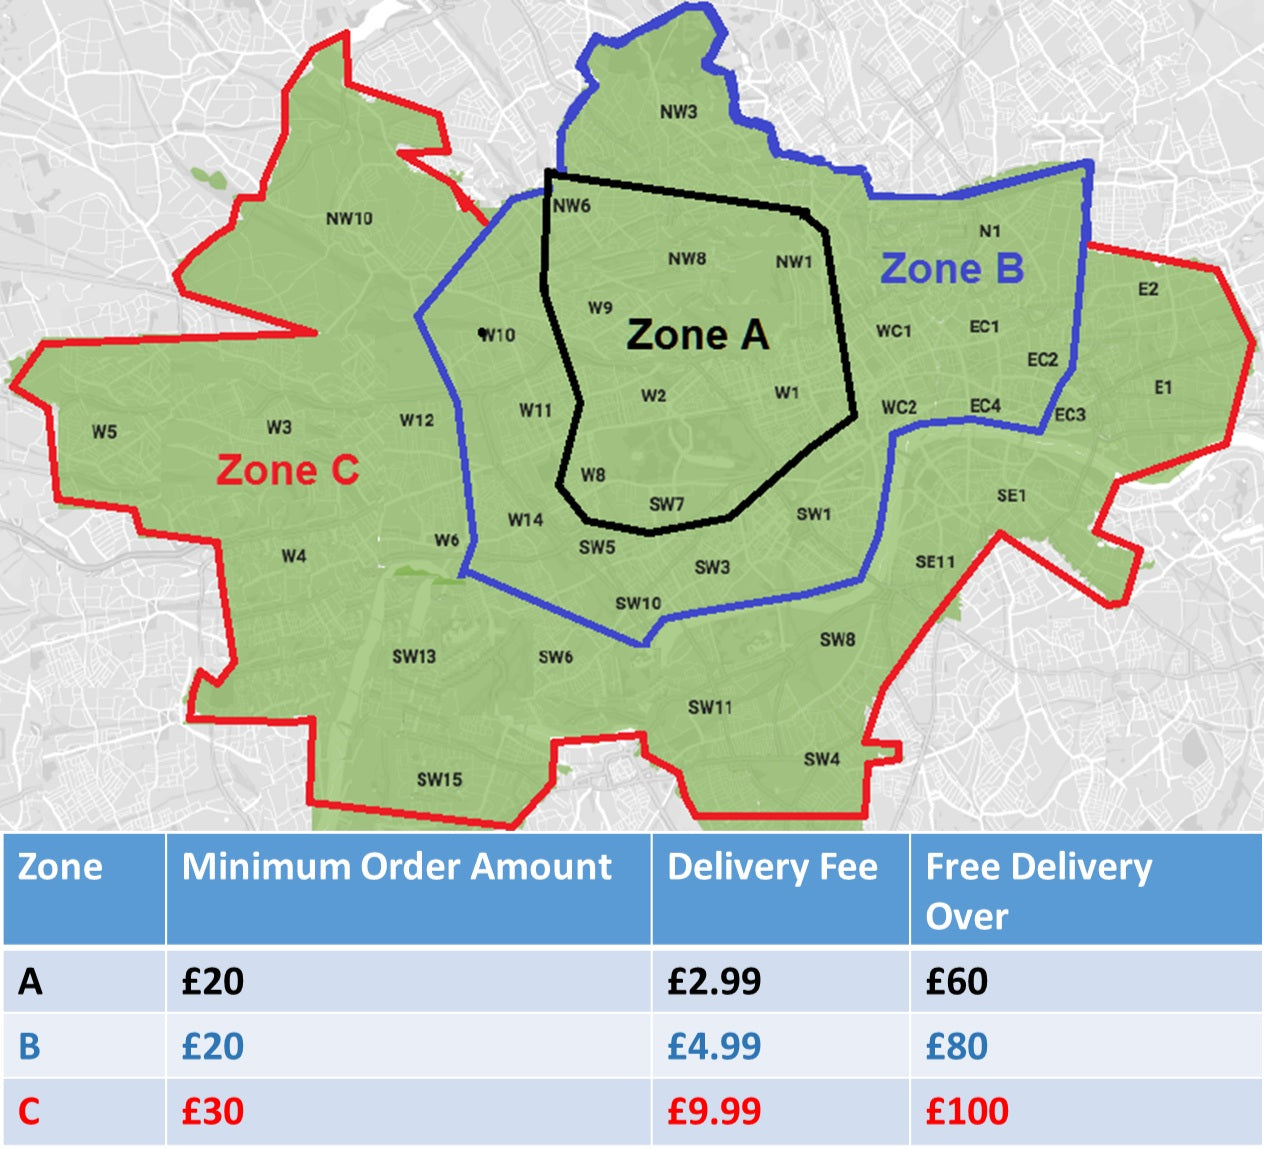 Zones In London Map.Delivery Shipping Zones Fees Sakbeh